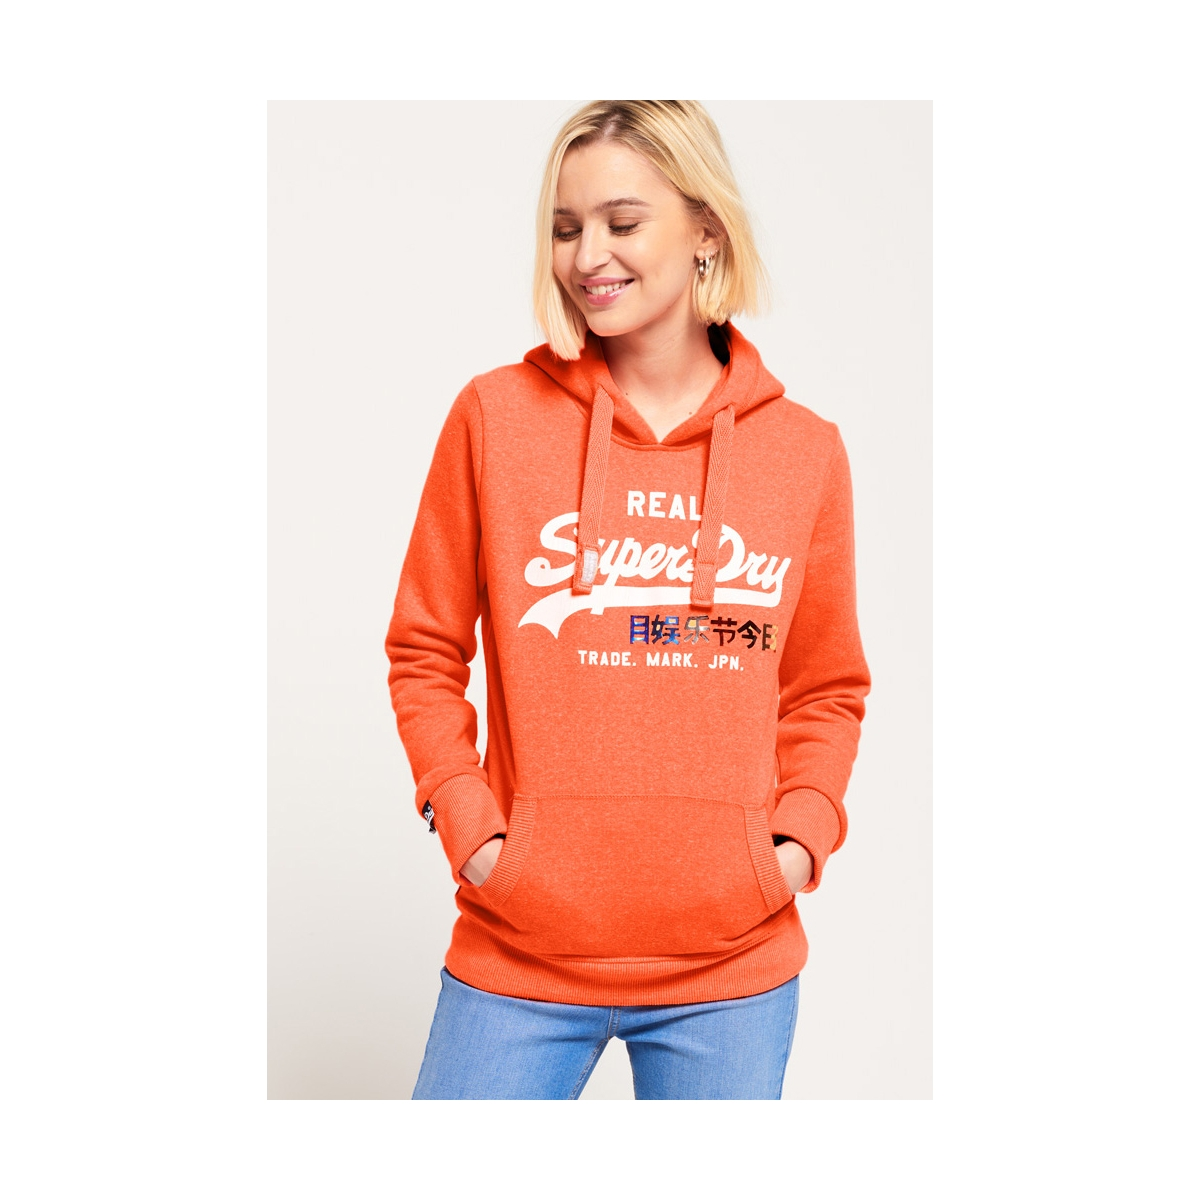 g20005sq superdry sweater ne8 (fluro coral snowy)